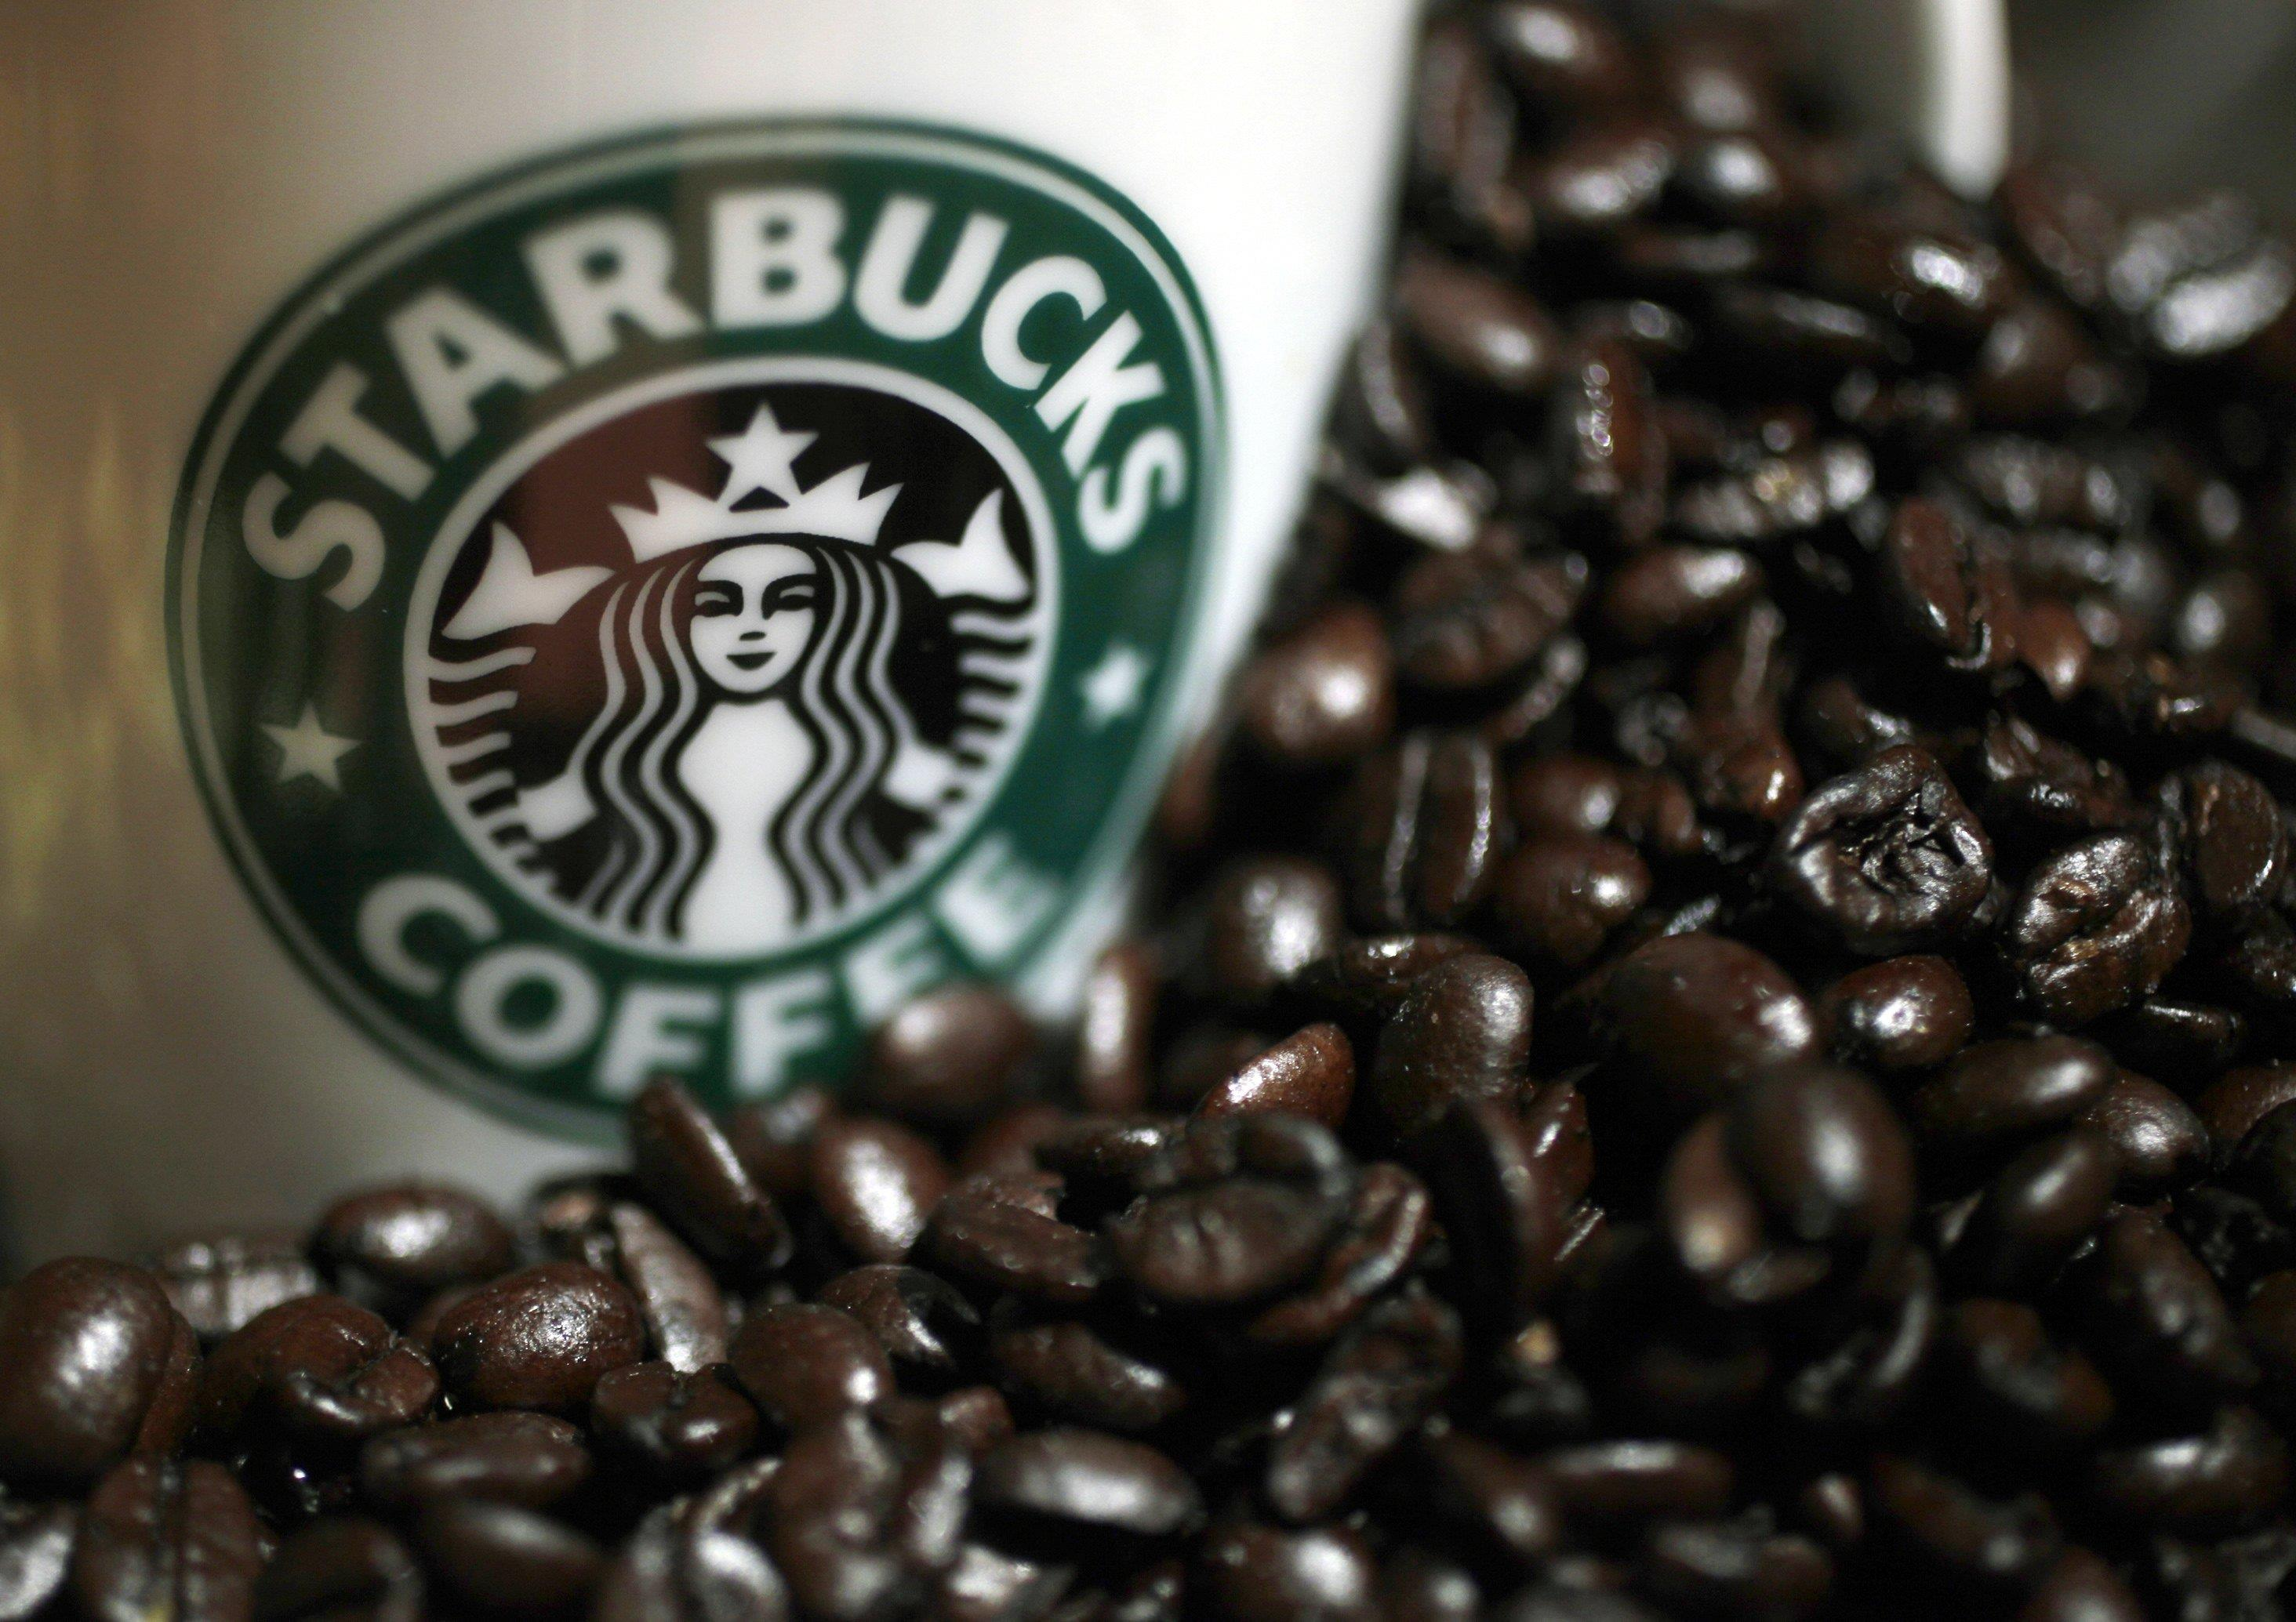 Starbucks will open its doors in Panama